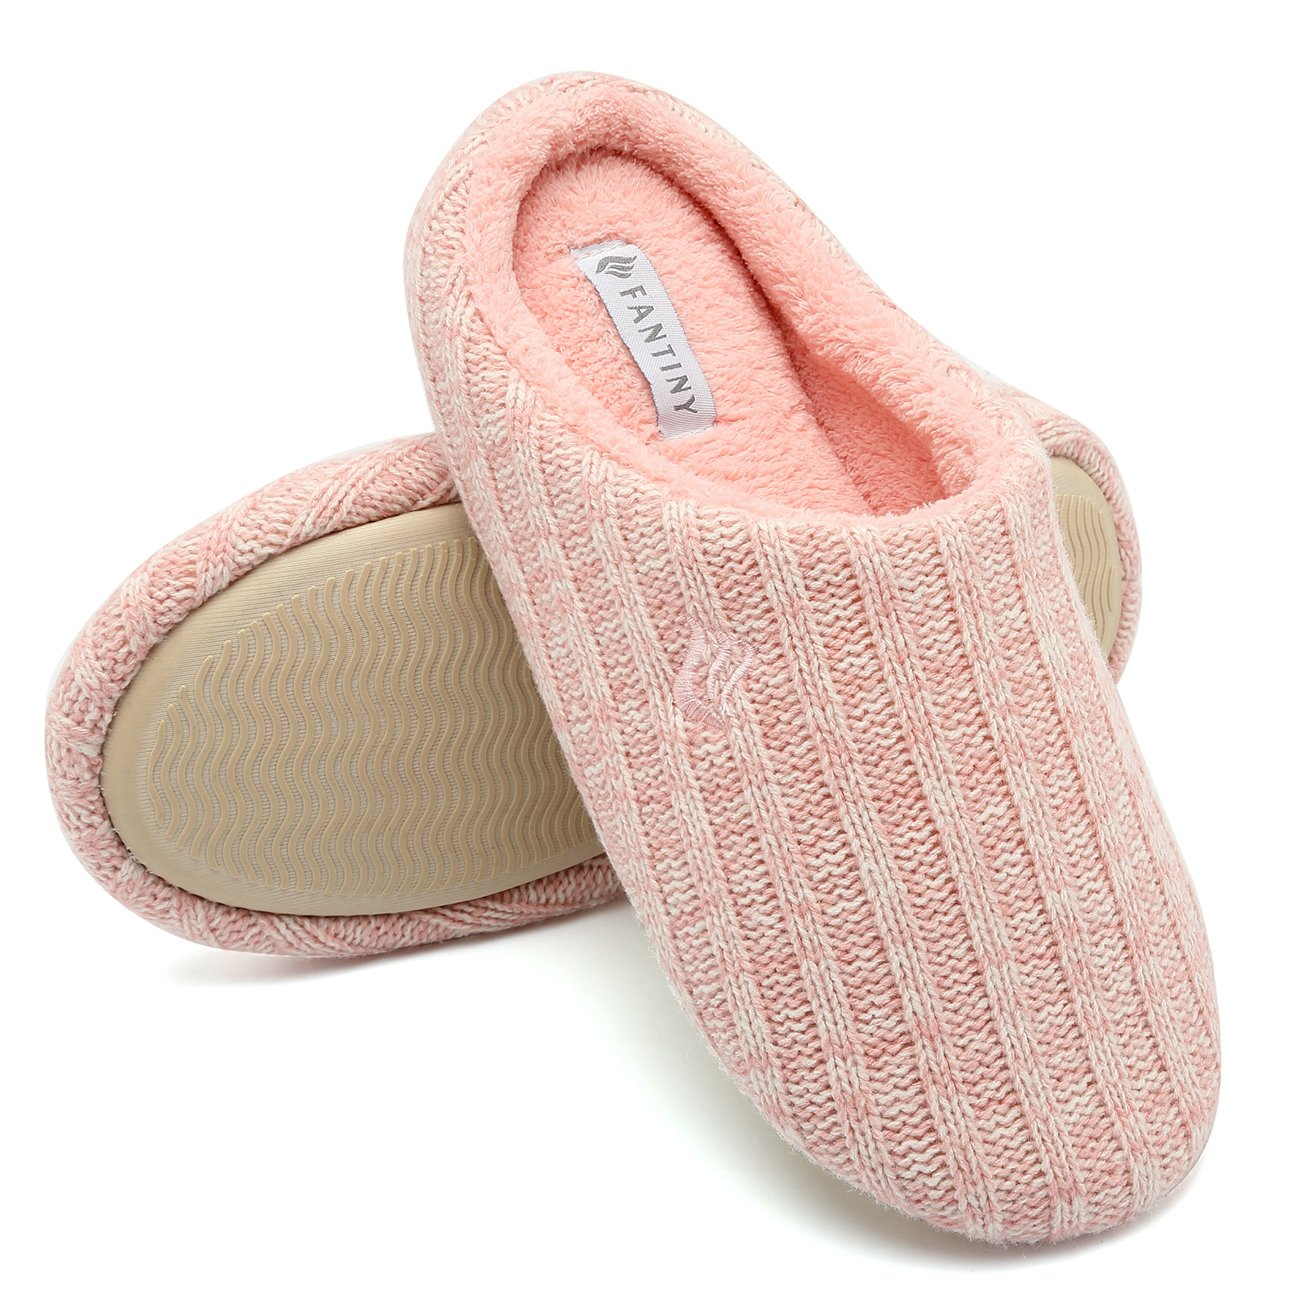 41c27d0174a4 CIOR Fantiny Women s House Slippers Indoor Memory Foam Cashmere  Cotton-Blend Knitted Autumn Winter Anti-Slip 2nd Upgrated  Version-U118WMT029-Pink-F-38-39